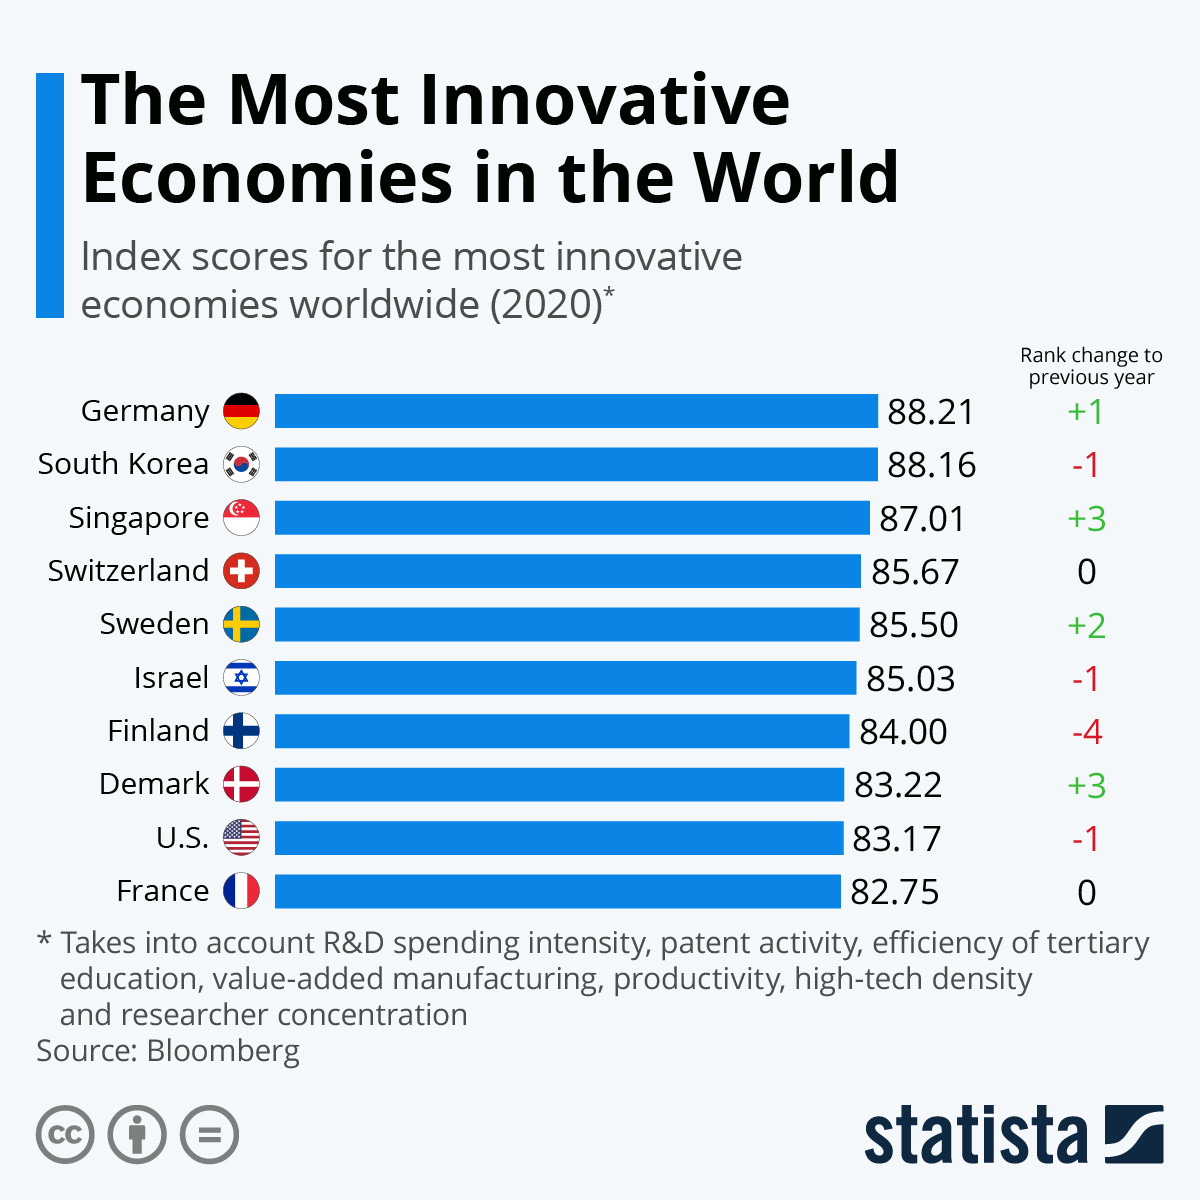 The most innovative economies in the world in 2020